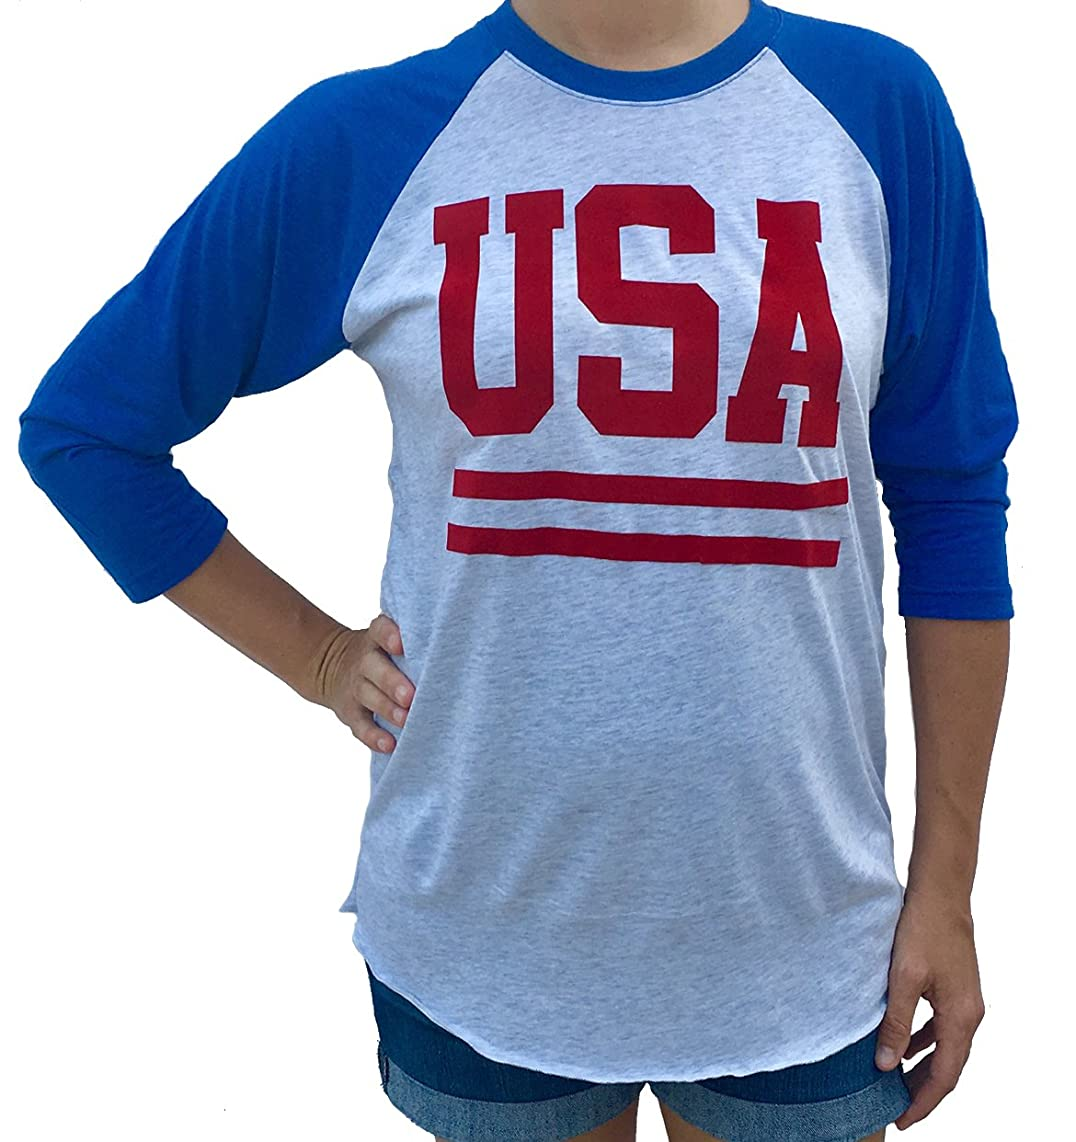 Women's USA with Stripes 3/4 Sleeve Tri Blend Raglan Tshirt White with Blue Sleeves